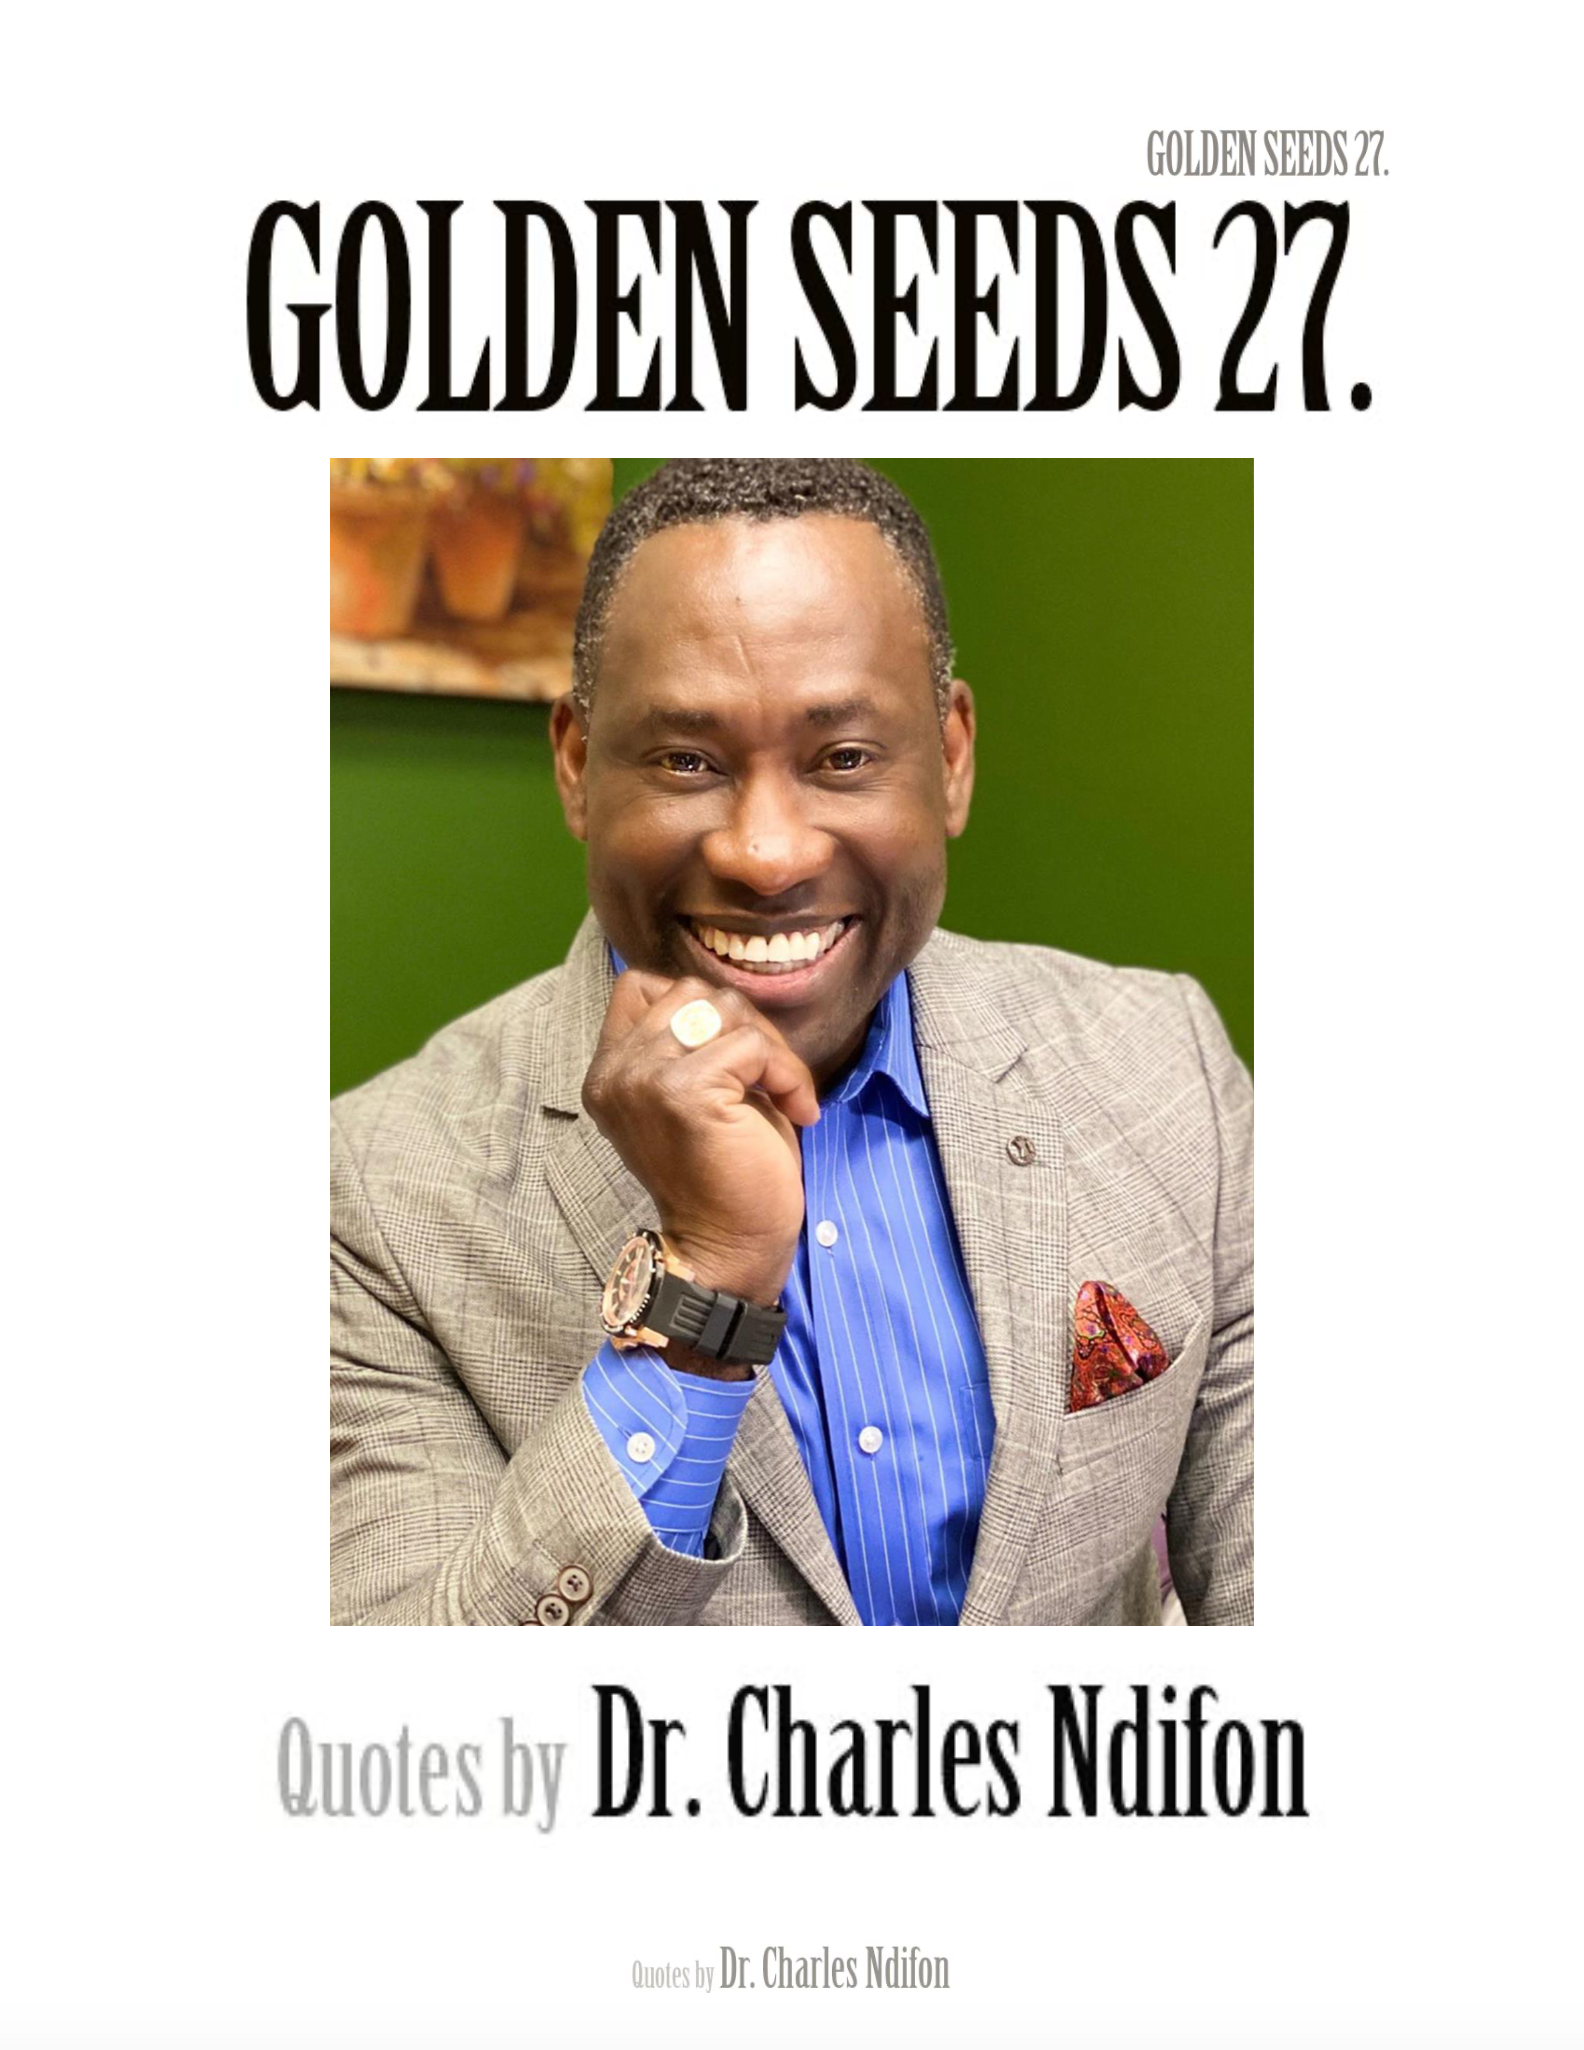 Golden Seeds 27